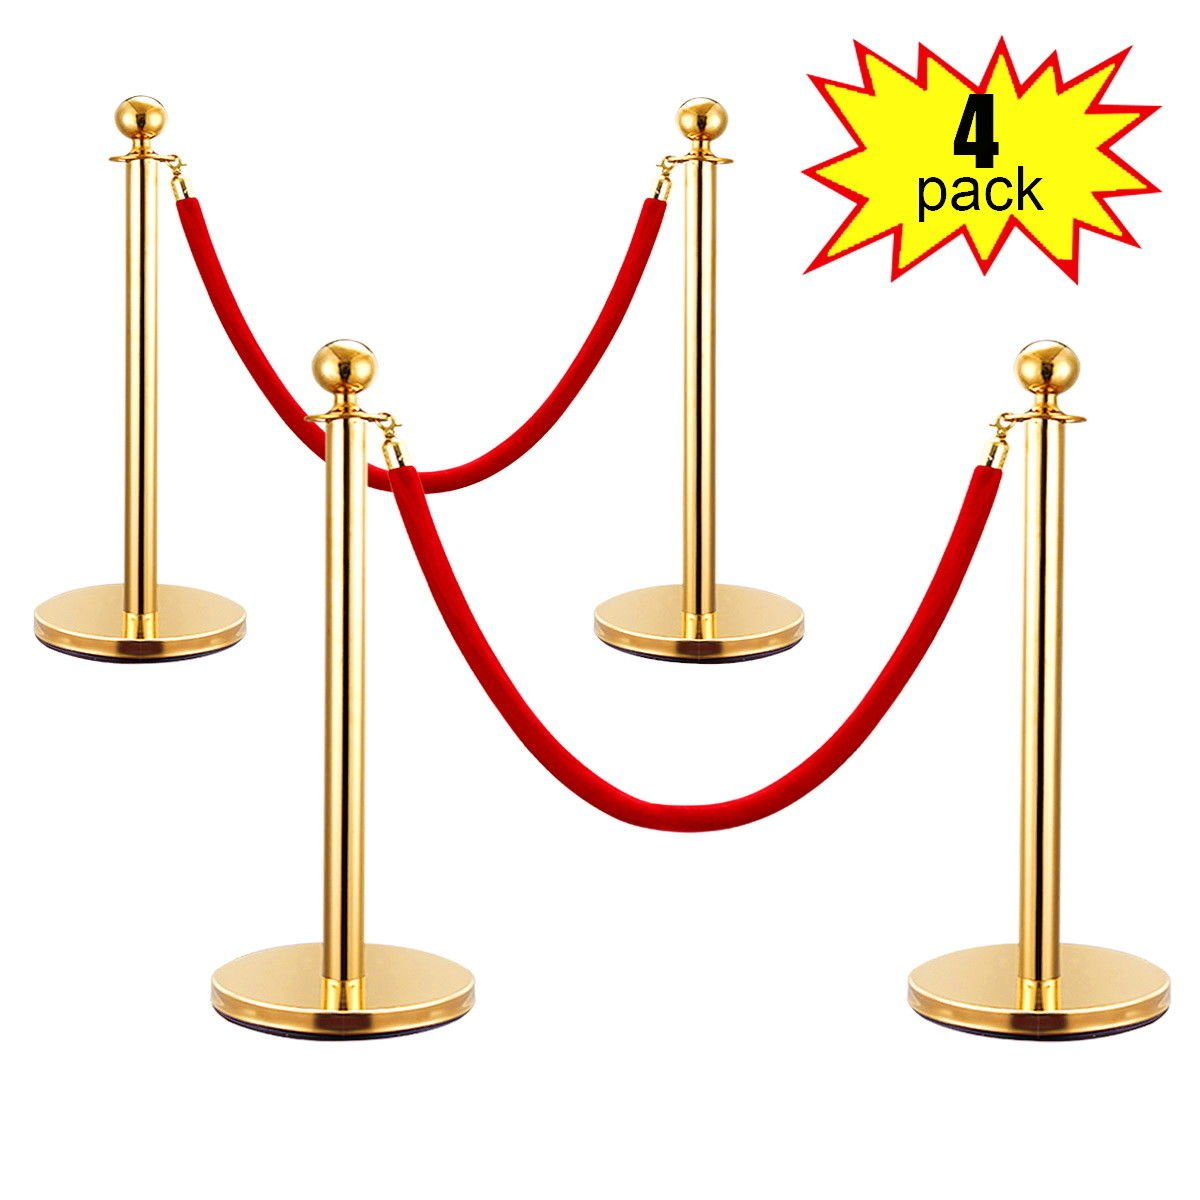 JAXPETY 2 Sets Round Top Polished Brass Stanchion Posts Queue Barrier, Pack of 4 Posts with Red Velvet Ropes,Gold